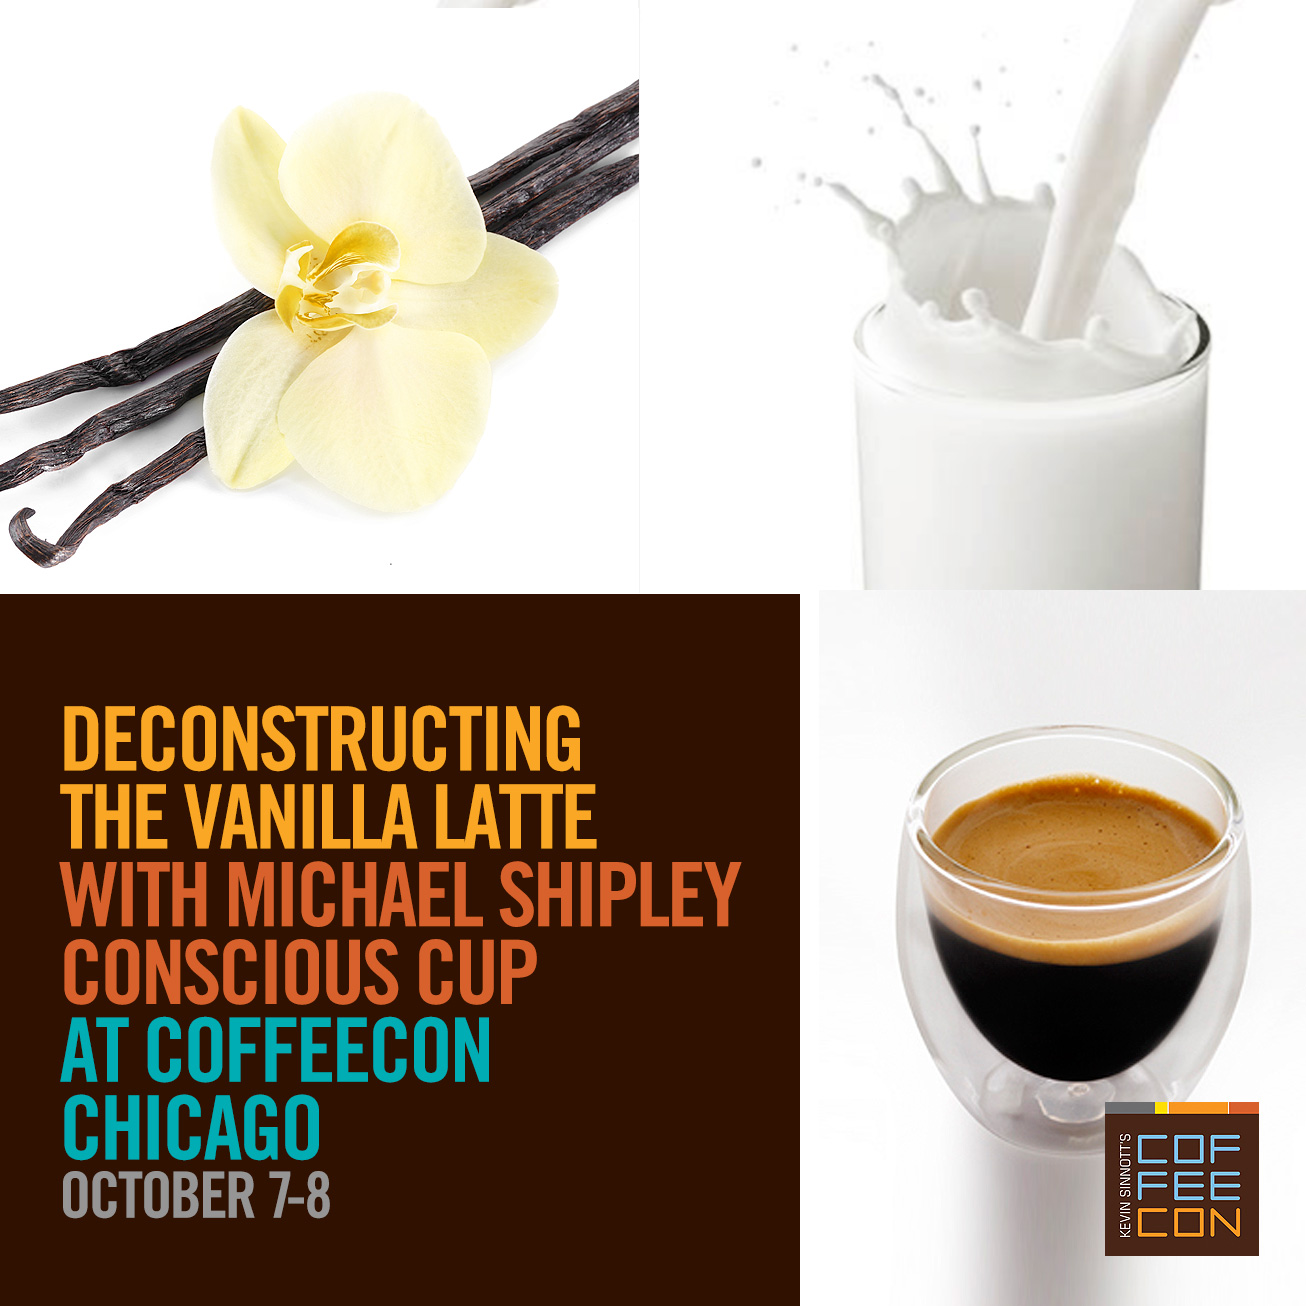 Deconstructing The Vanilla Latte at CoffeeCon Chicago 2017